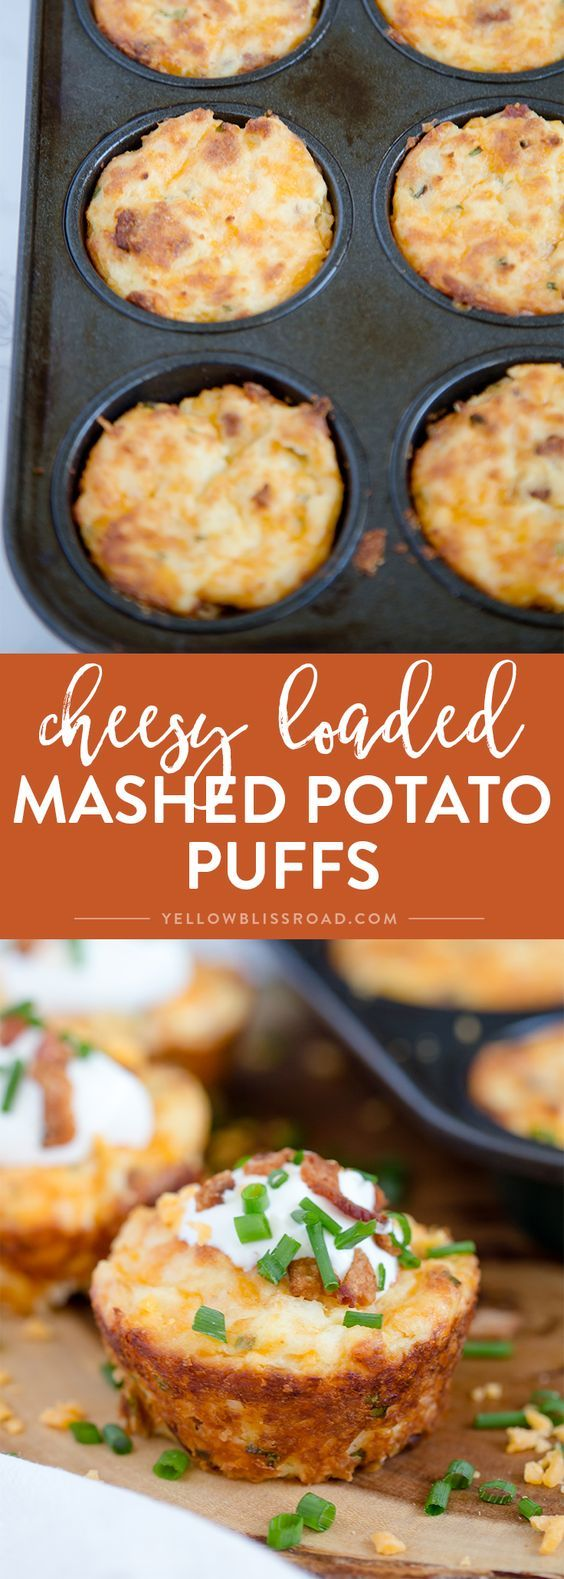 Loaded Mashed Potato Puffs ~ filled with bacon, cheese and chives, these bites are perfect as an unexpected dinner side or for your Easter Brunch!